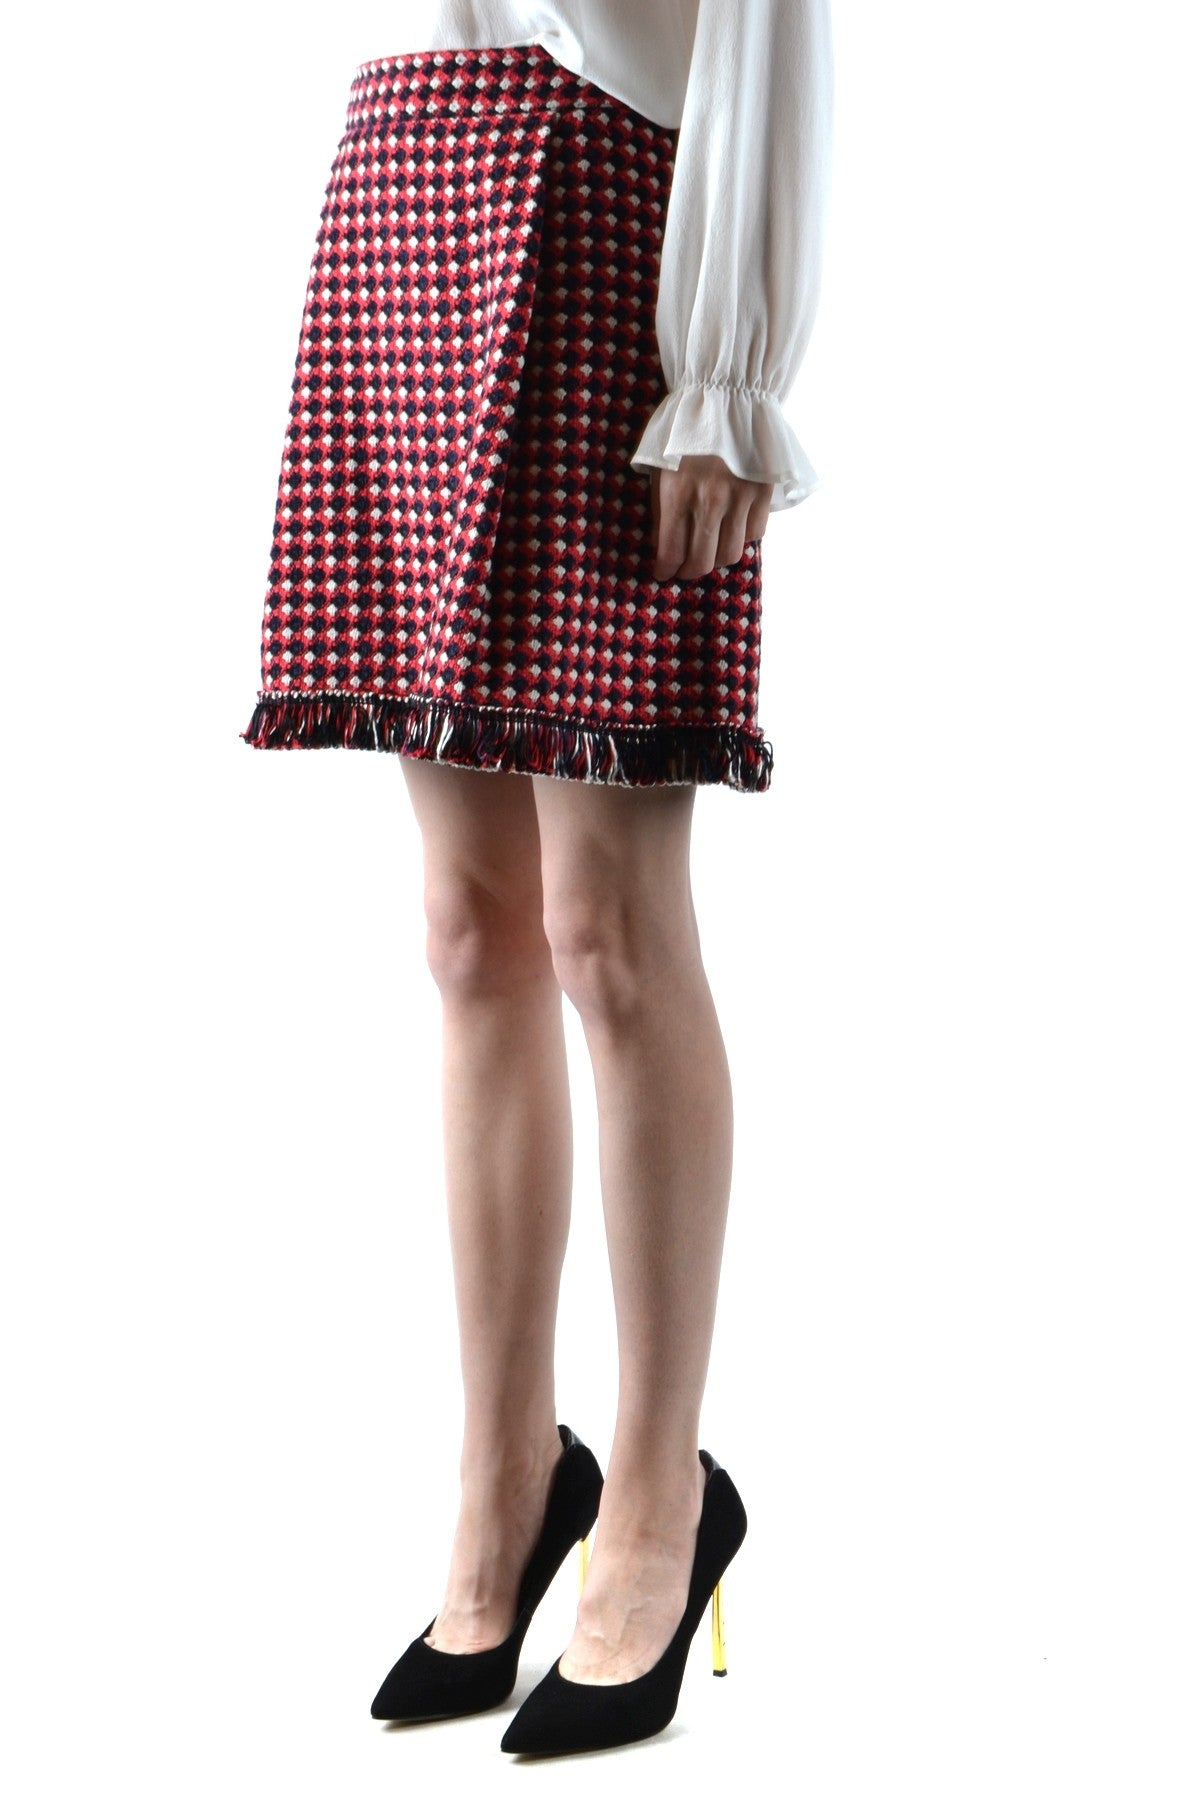 Boutique Moschino Woman Skirt